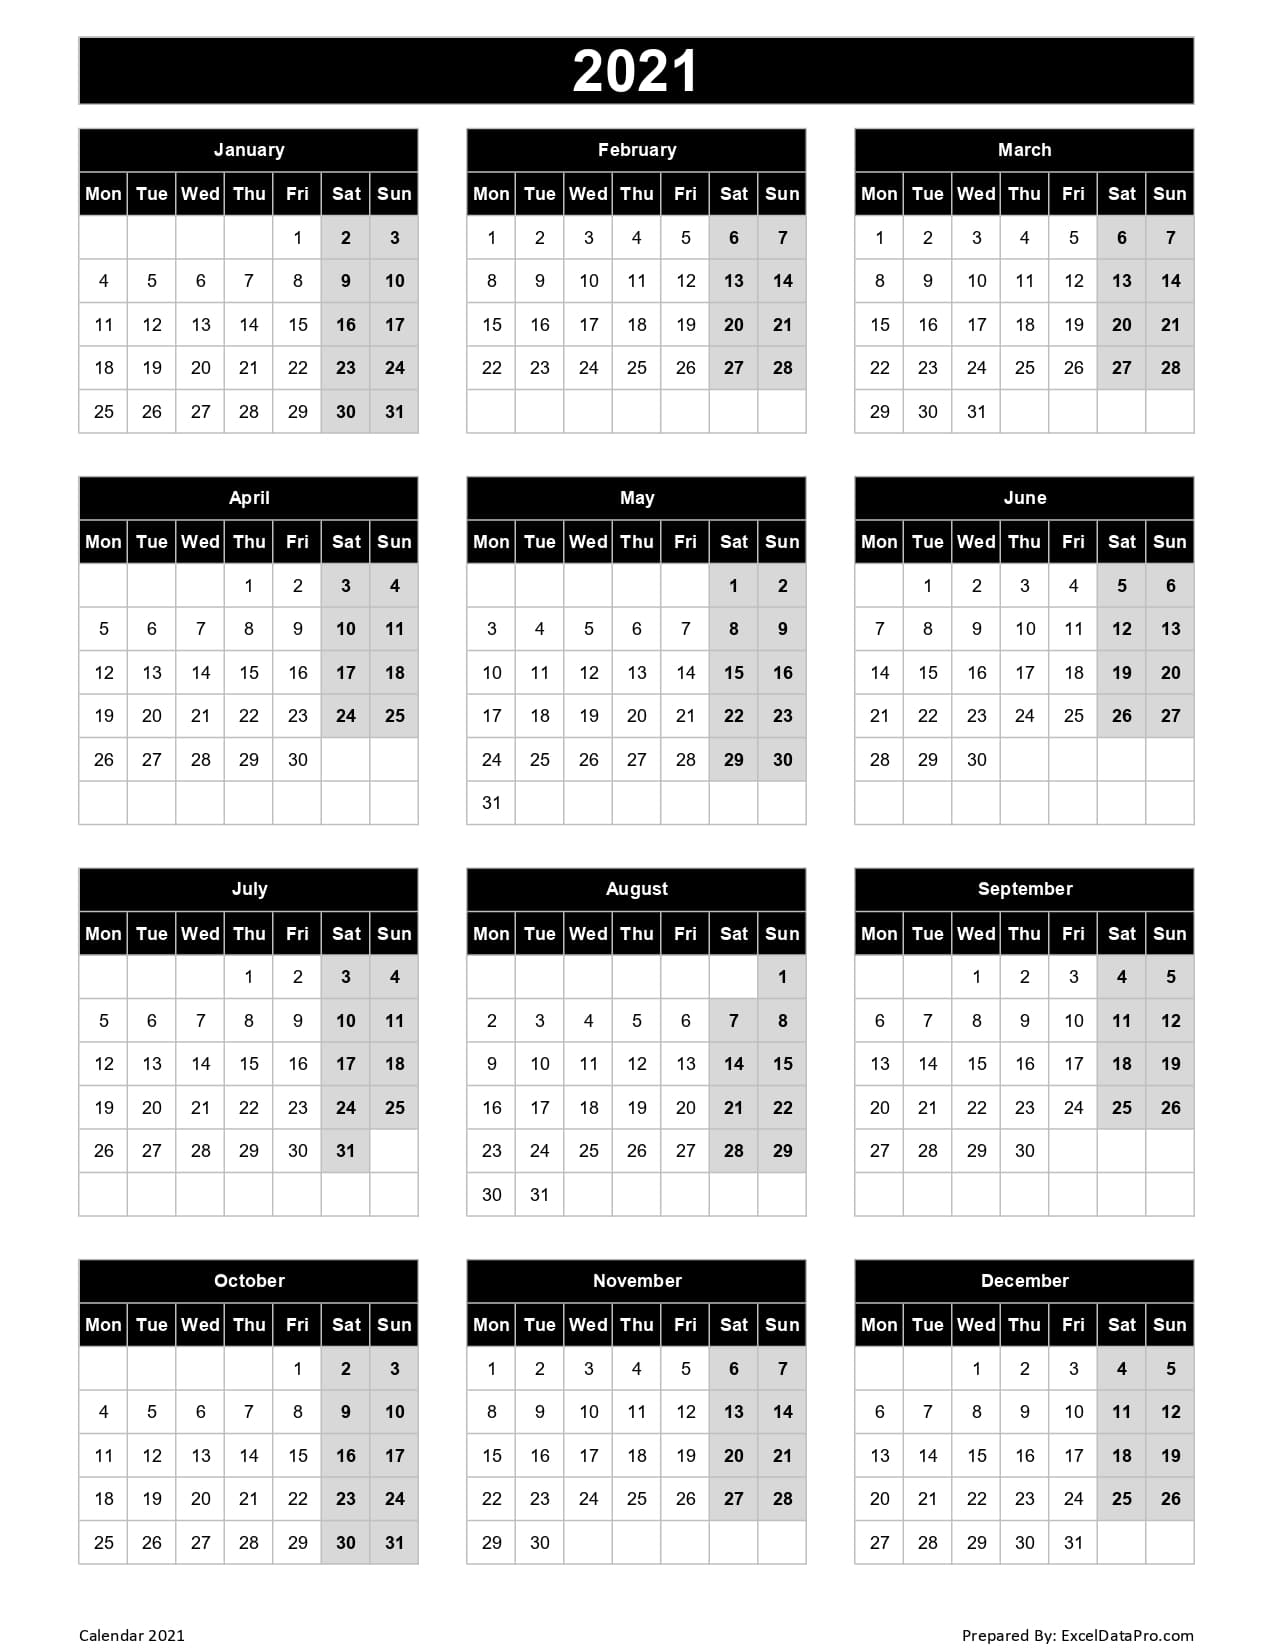 Download 2021 Yearly Calendar (Mon Start) Excel Template - Exceldatapro